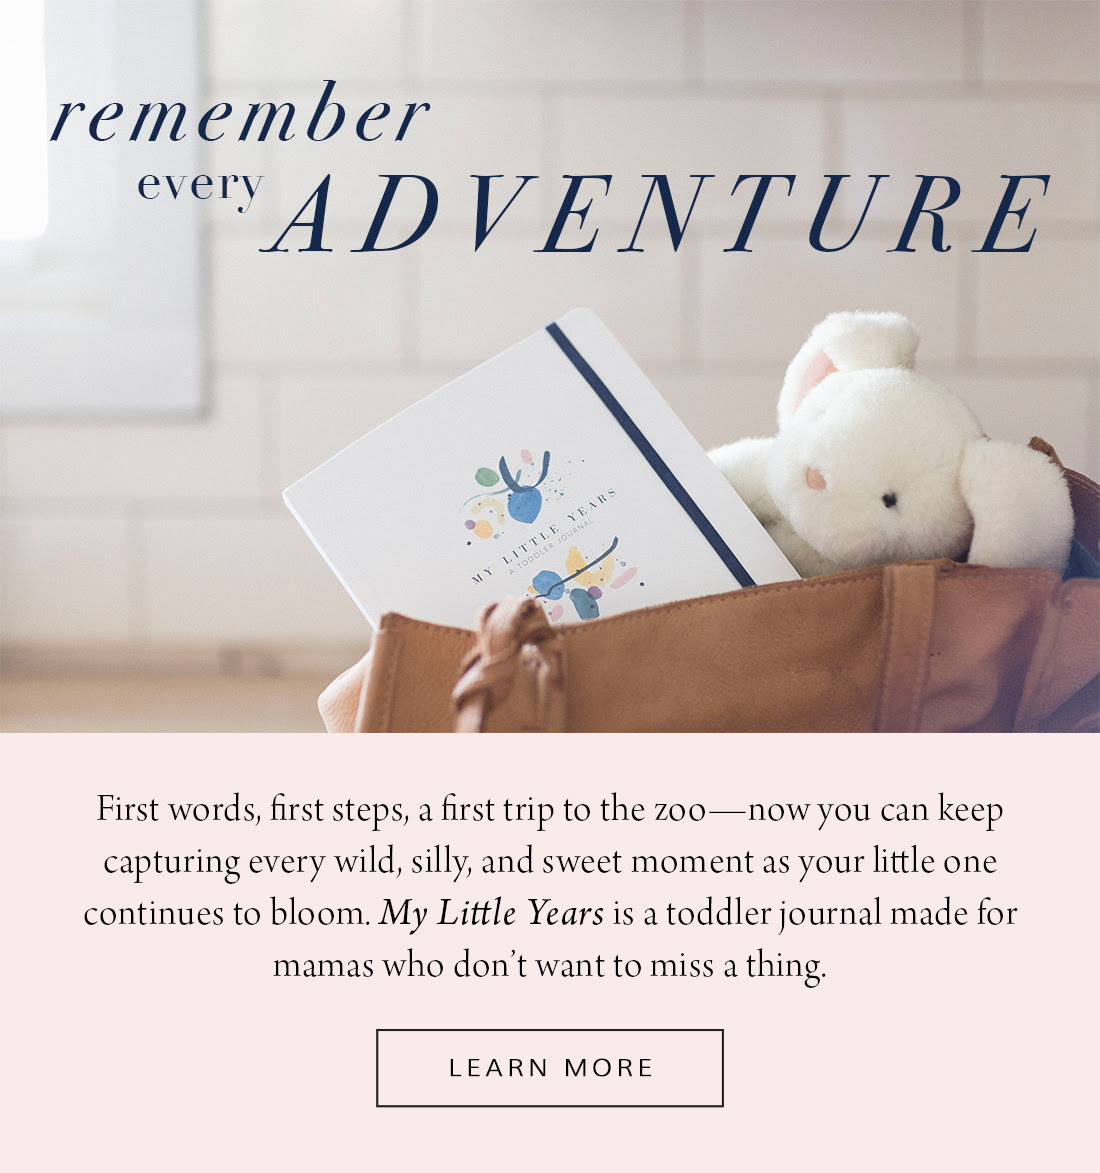 Email copy for a Baby Boy Bakery's  toddler journal —a follow-up companion to the popular baby journal.